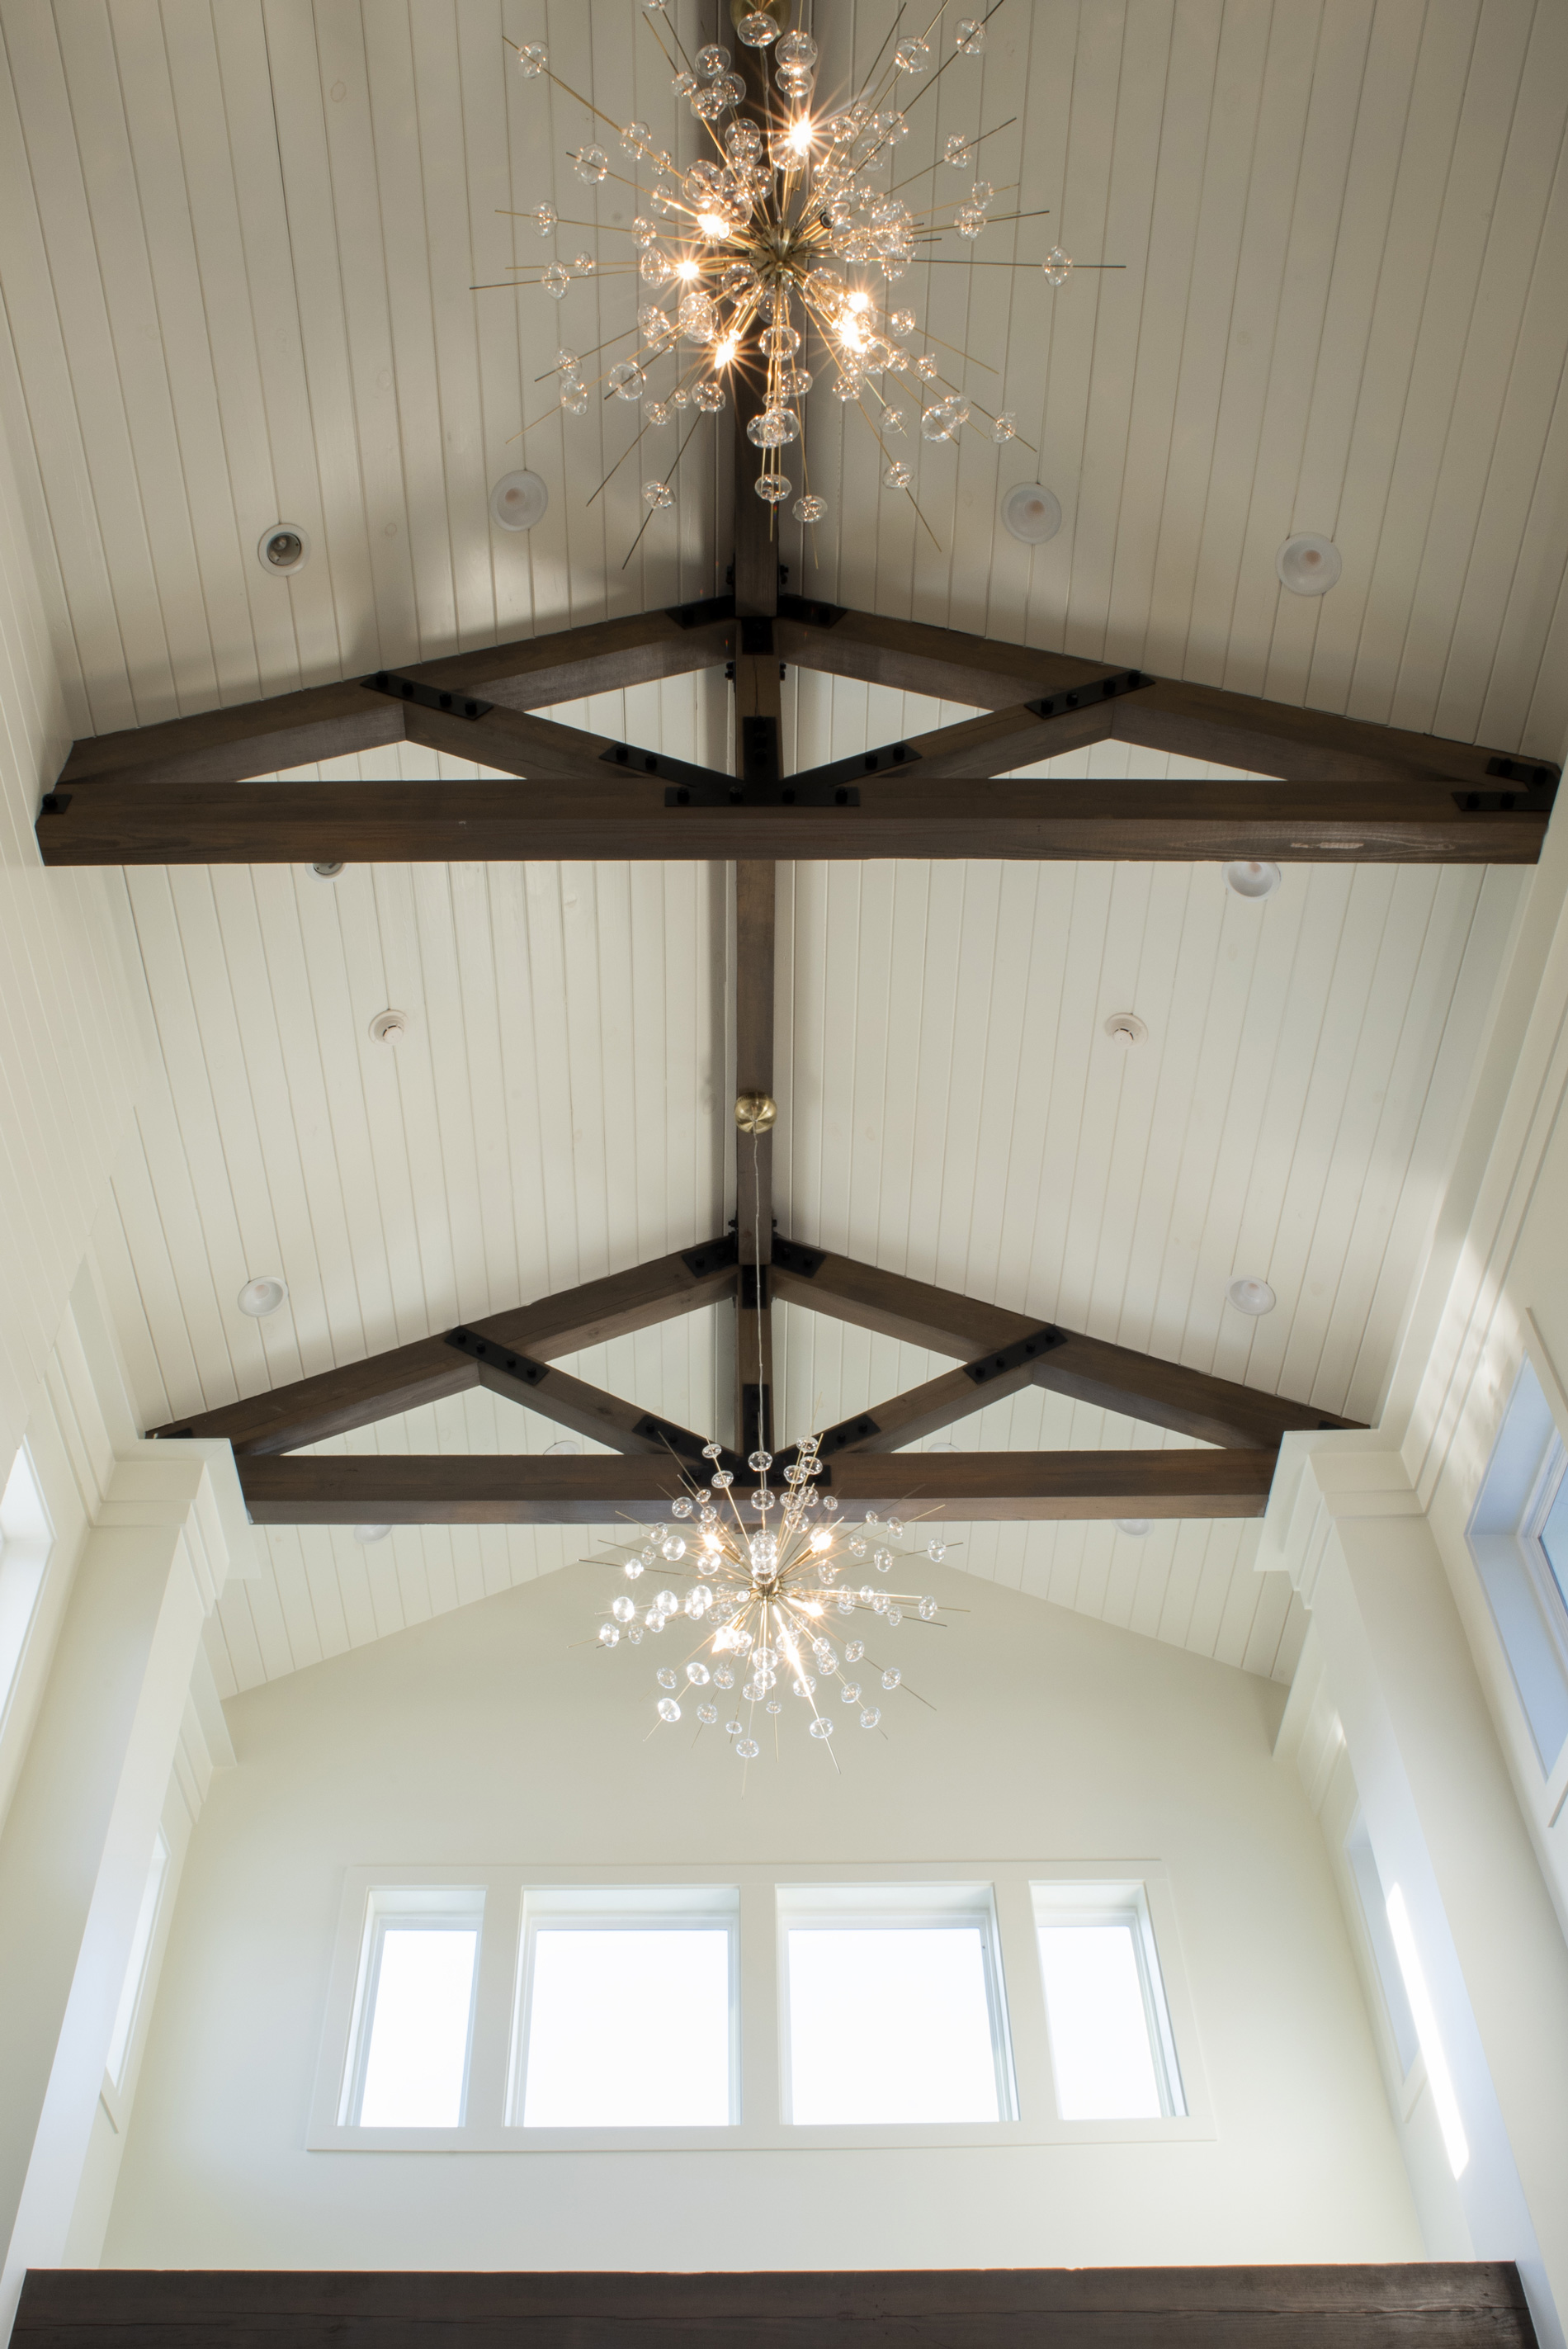 Upscale Lighting Features at The Palms at Juban Lakes Apartments in Denham Springs, Louisiana